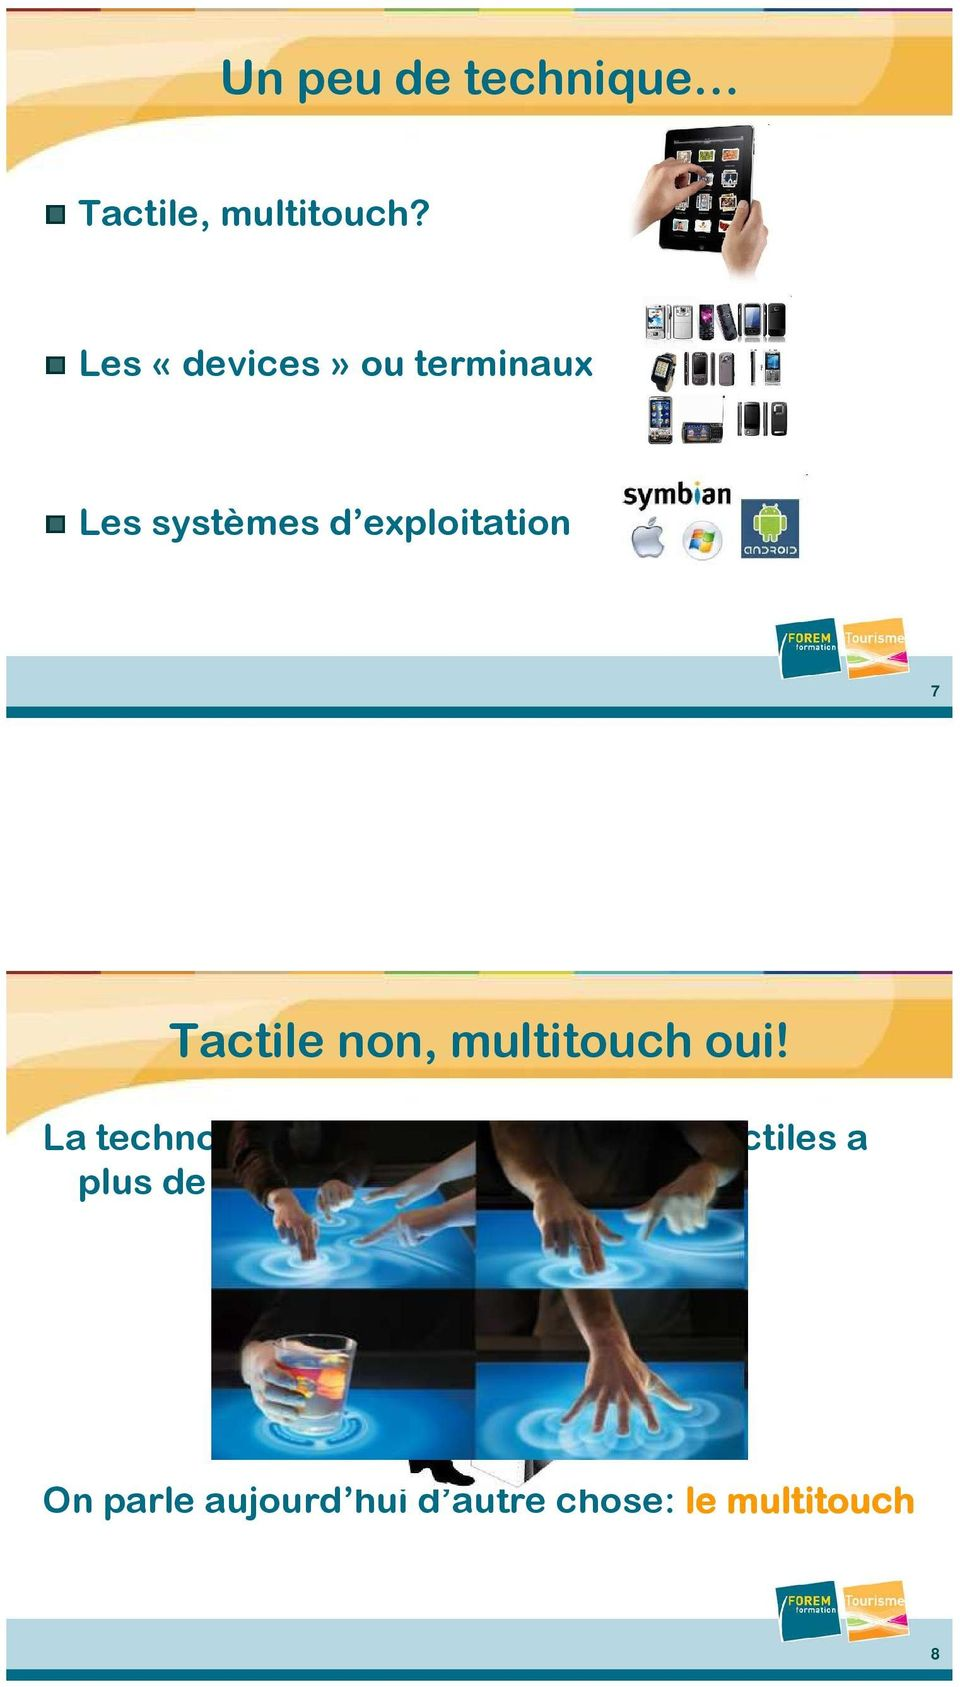 Tactile non, multitouch oui!